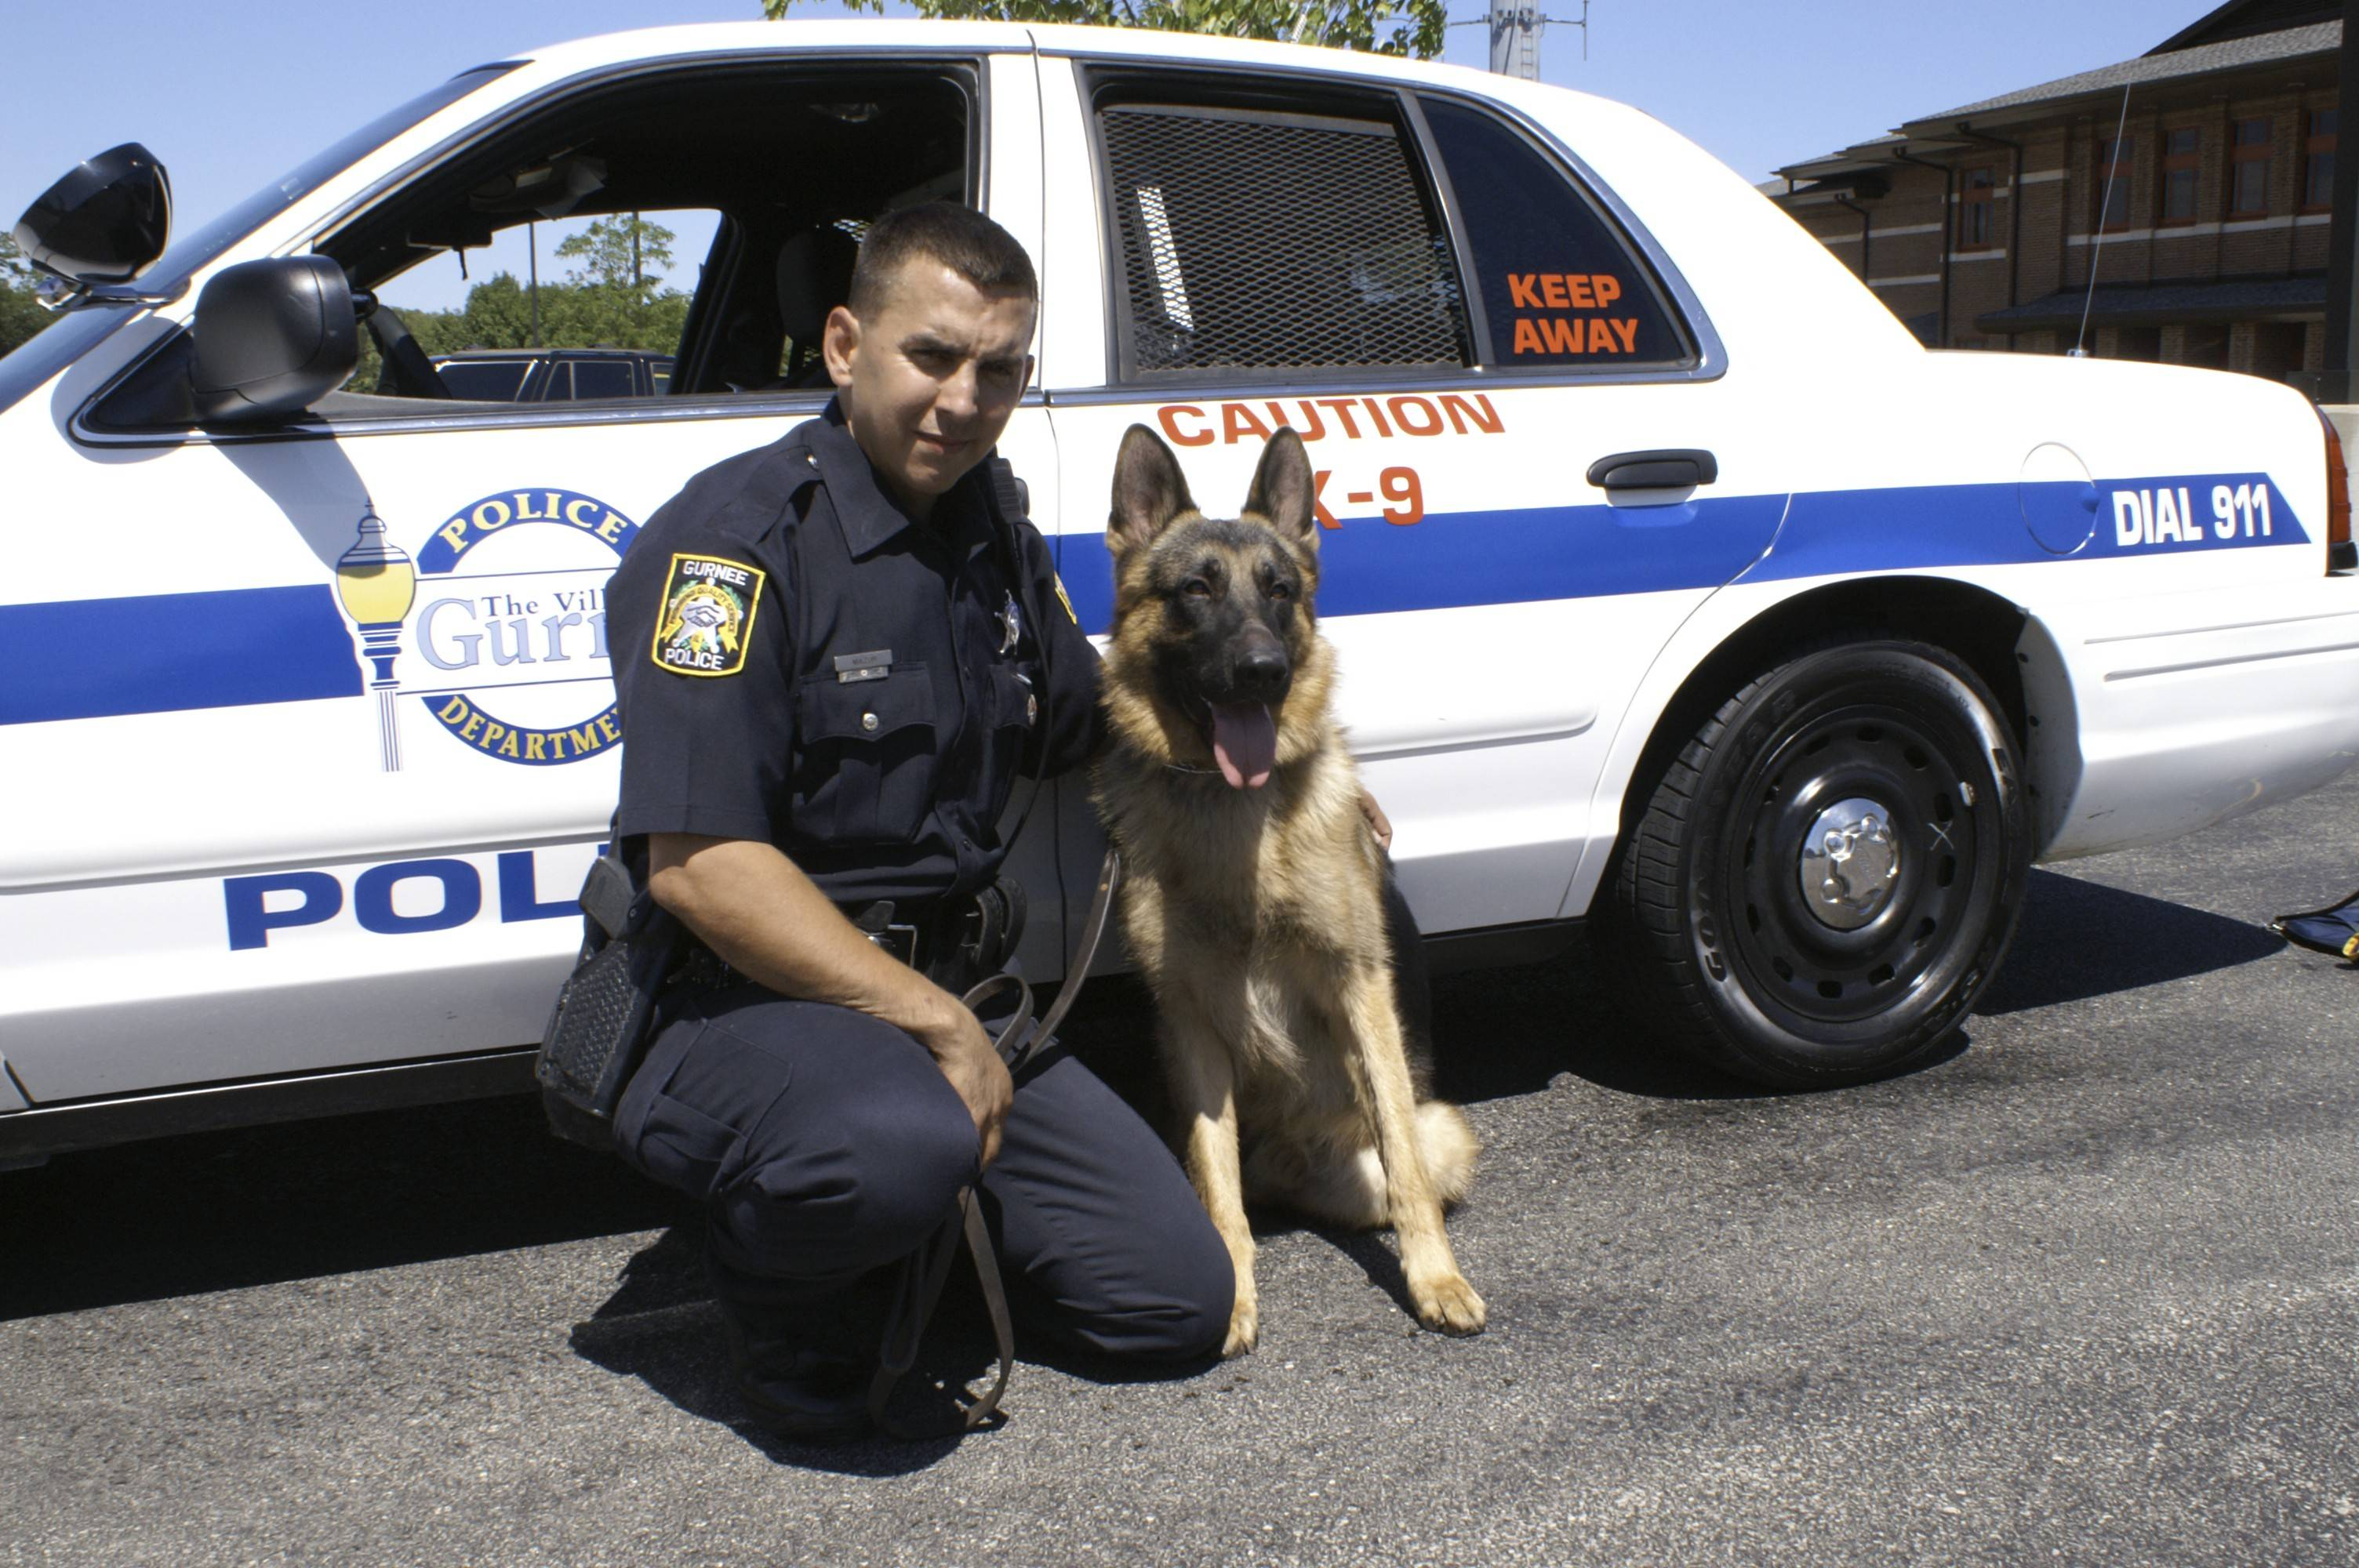 Gurnee police dog Shane, with handler Officer Philip Mazur, is retiring after about eight years on the job. Shane will continue to live with Mazur as a family dog.